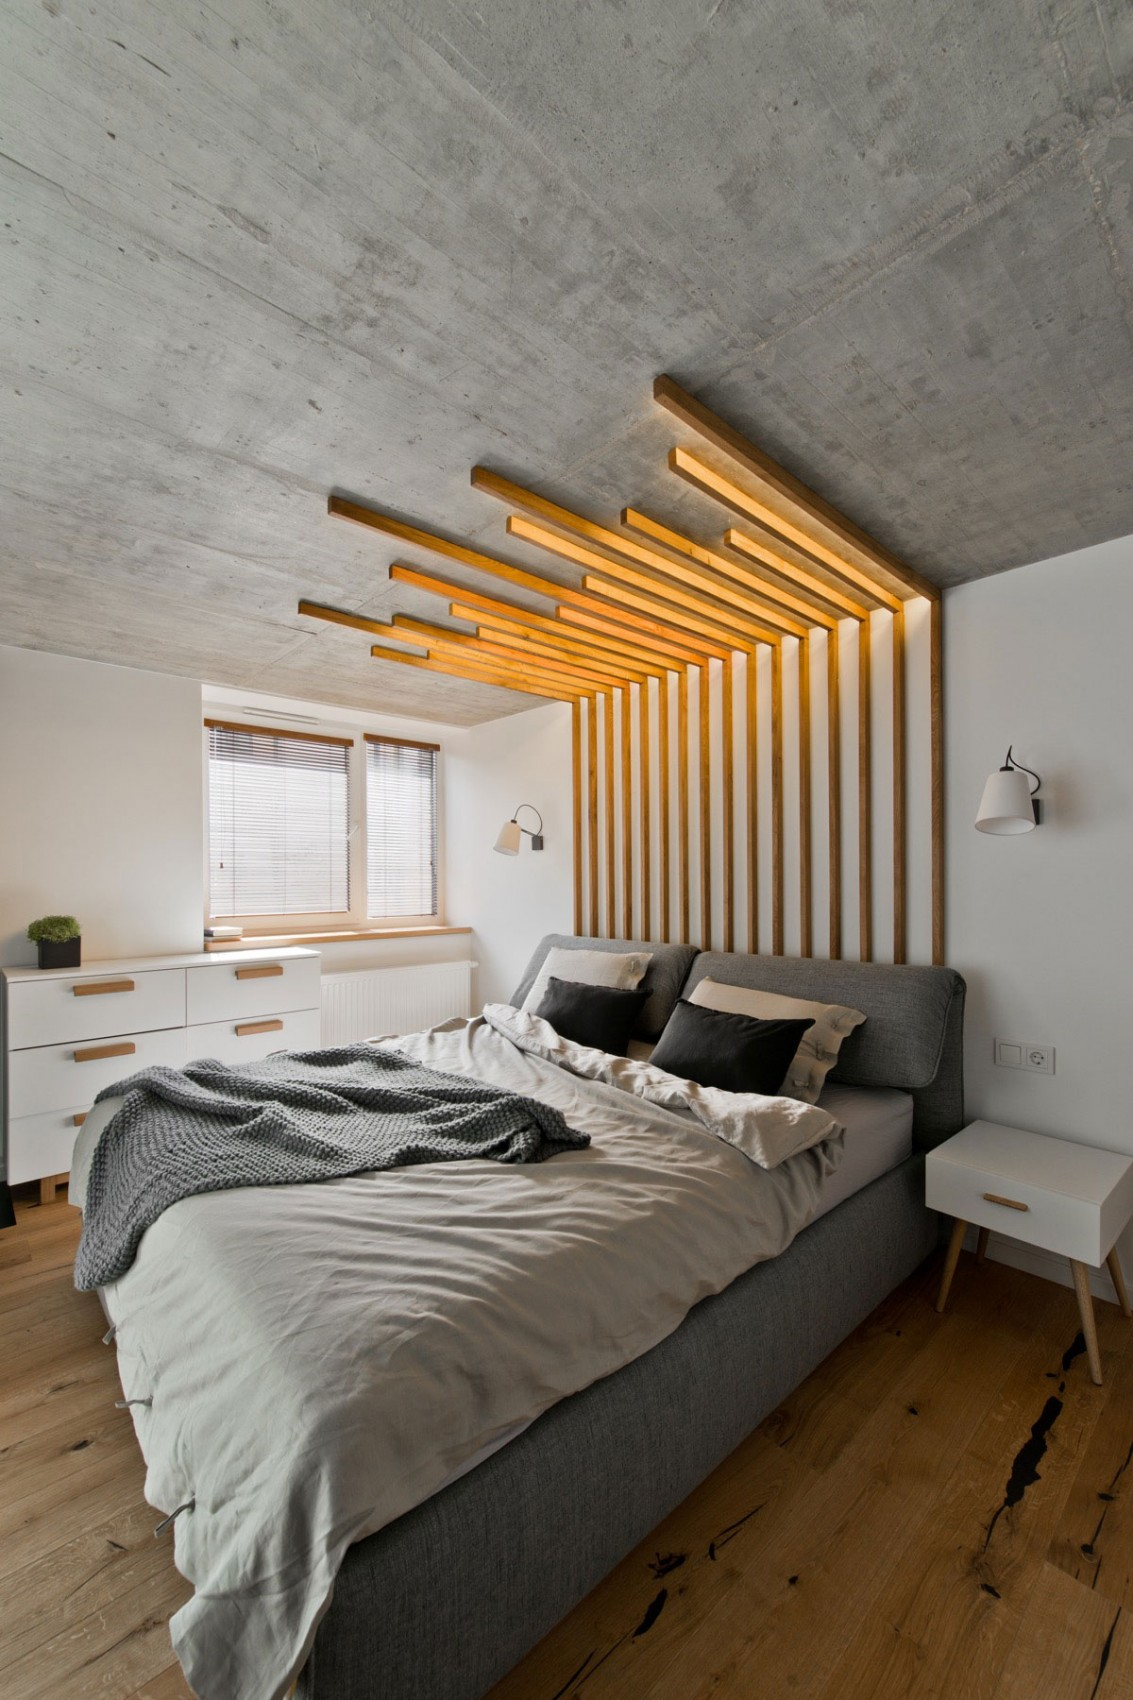 Modern bedroom interior design by InArch